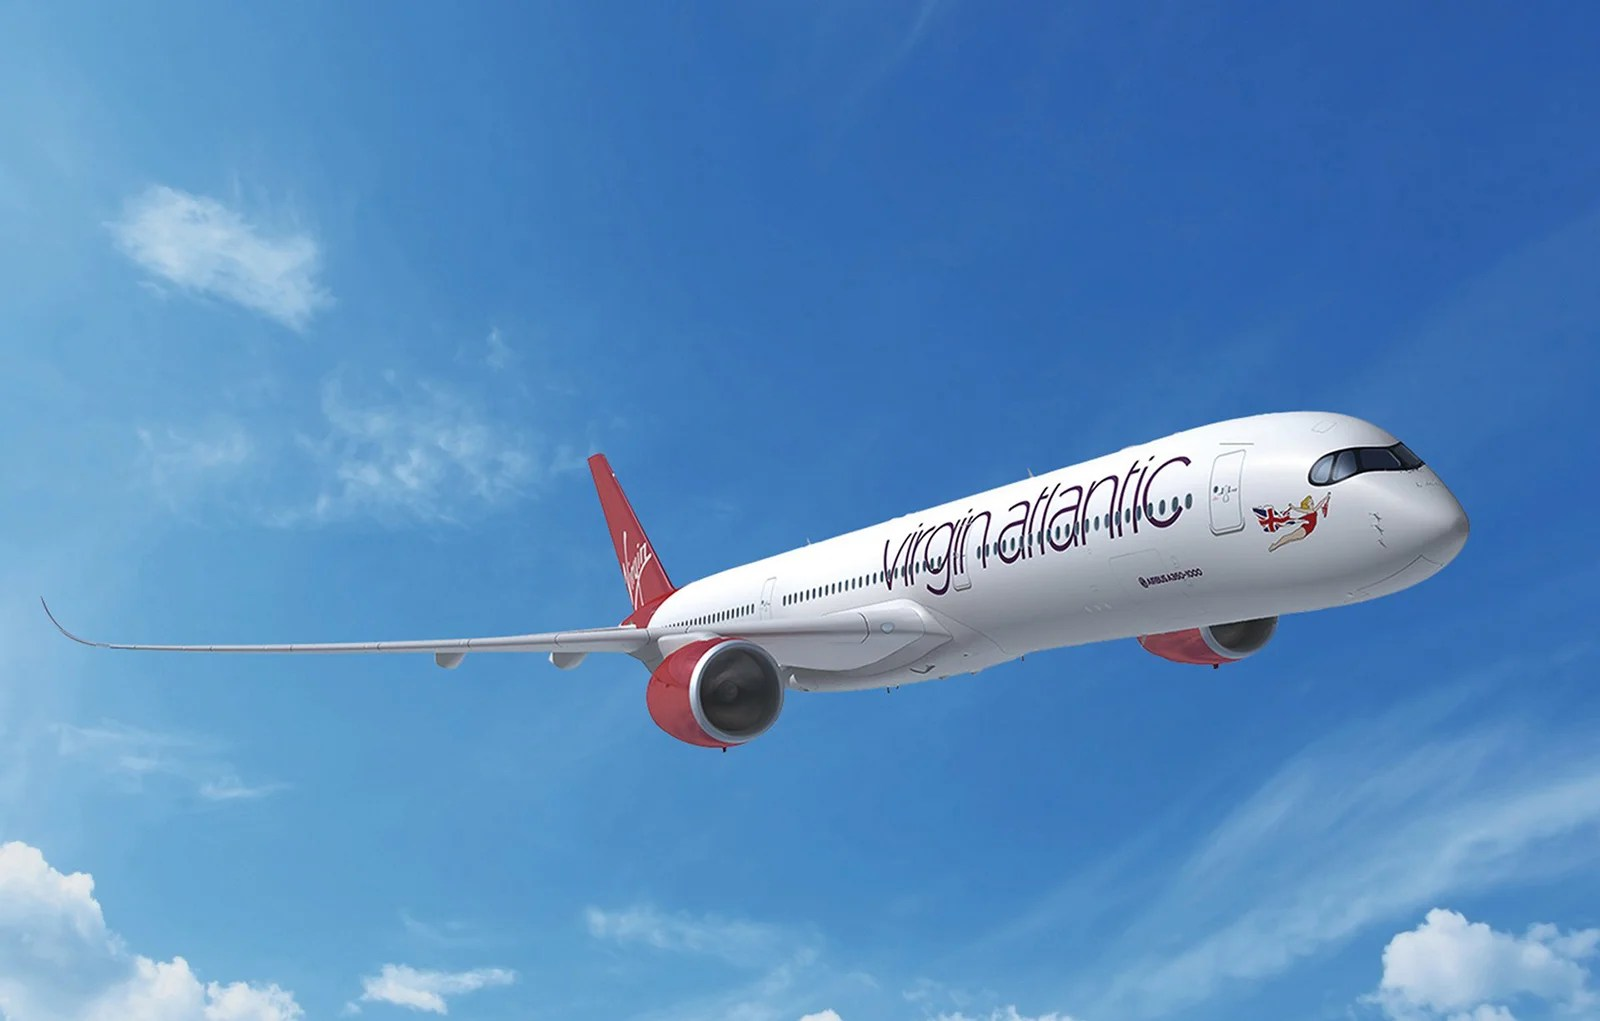 Virgin Atlantic Takes Delivery of Its New Plane for the JFK Route, the A350-1000